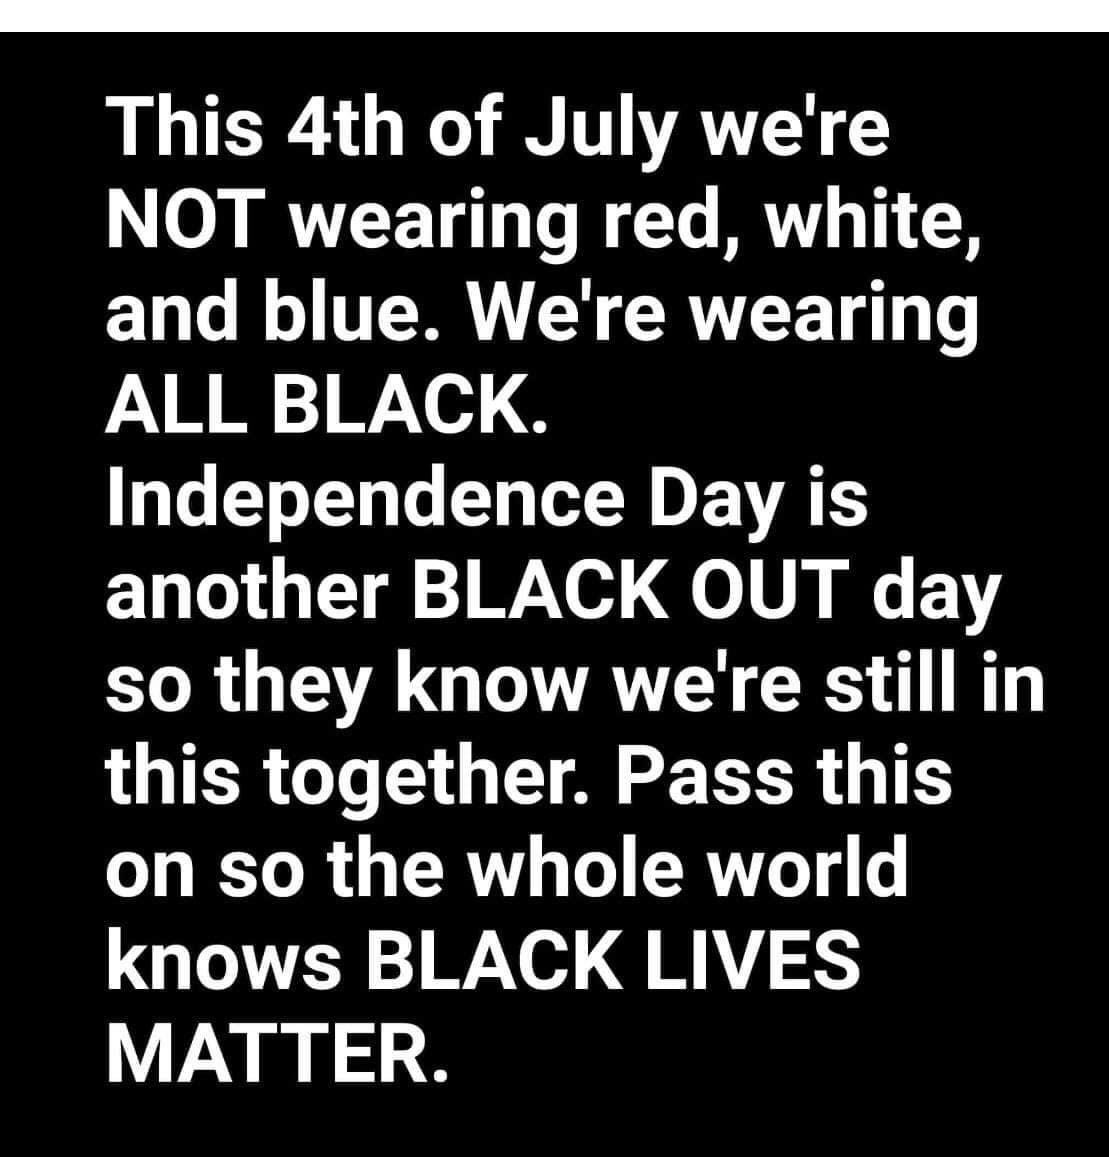 Definitely not...I know that some of us will be grilling and barbecuing this weekend...But I'm not just bc it's the 4th of July....I'm grilling bc I love grilled food and it's a beautiful day..#Juneteenth #BLM #StandTogether ✊🏾✊🏽✊🏿 https://t.co/TnVBa2wRQO